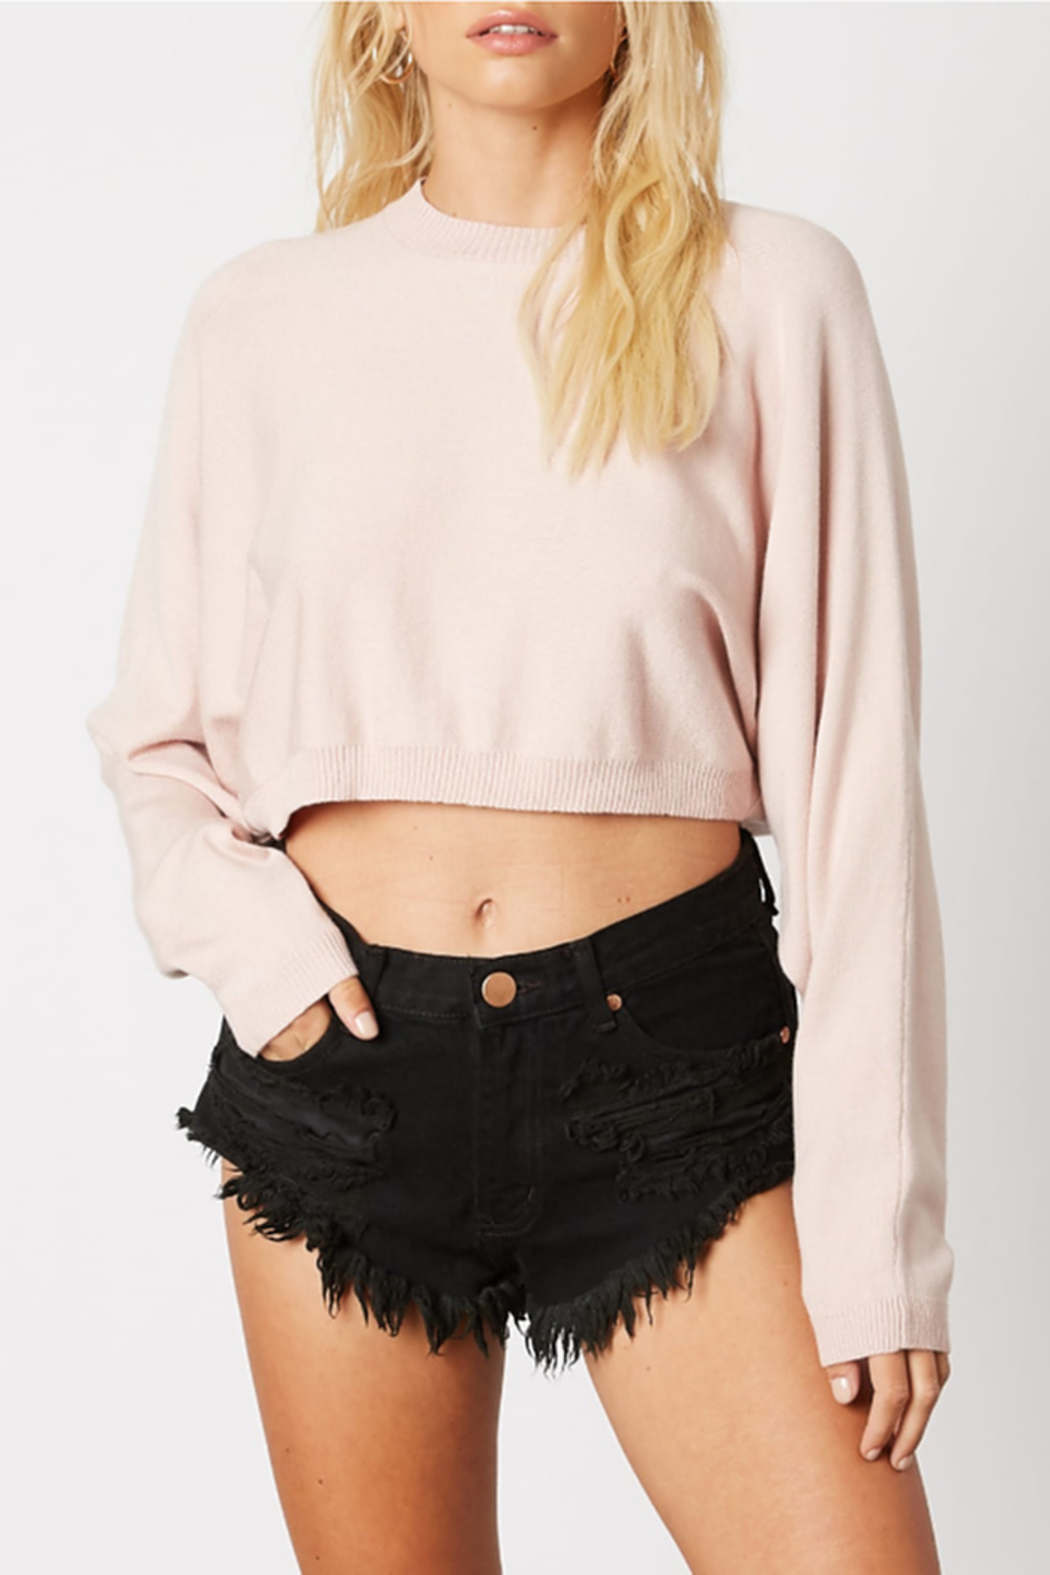 Cotton Candy Cropped Knit Sweater - Main Image